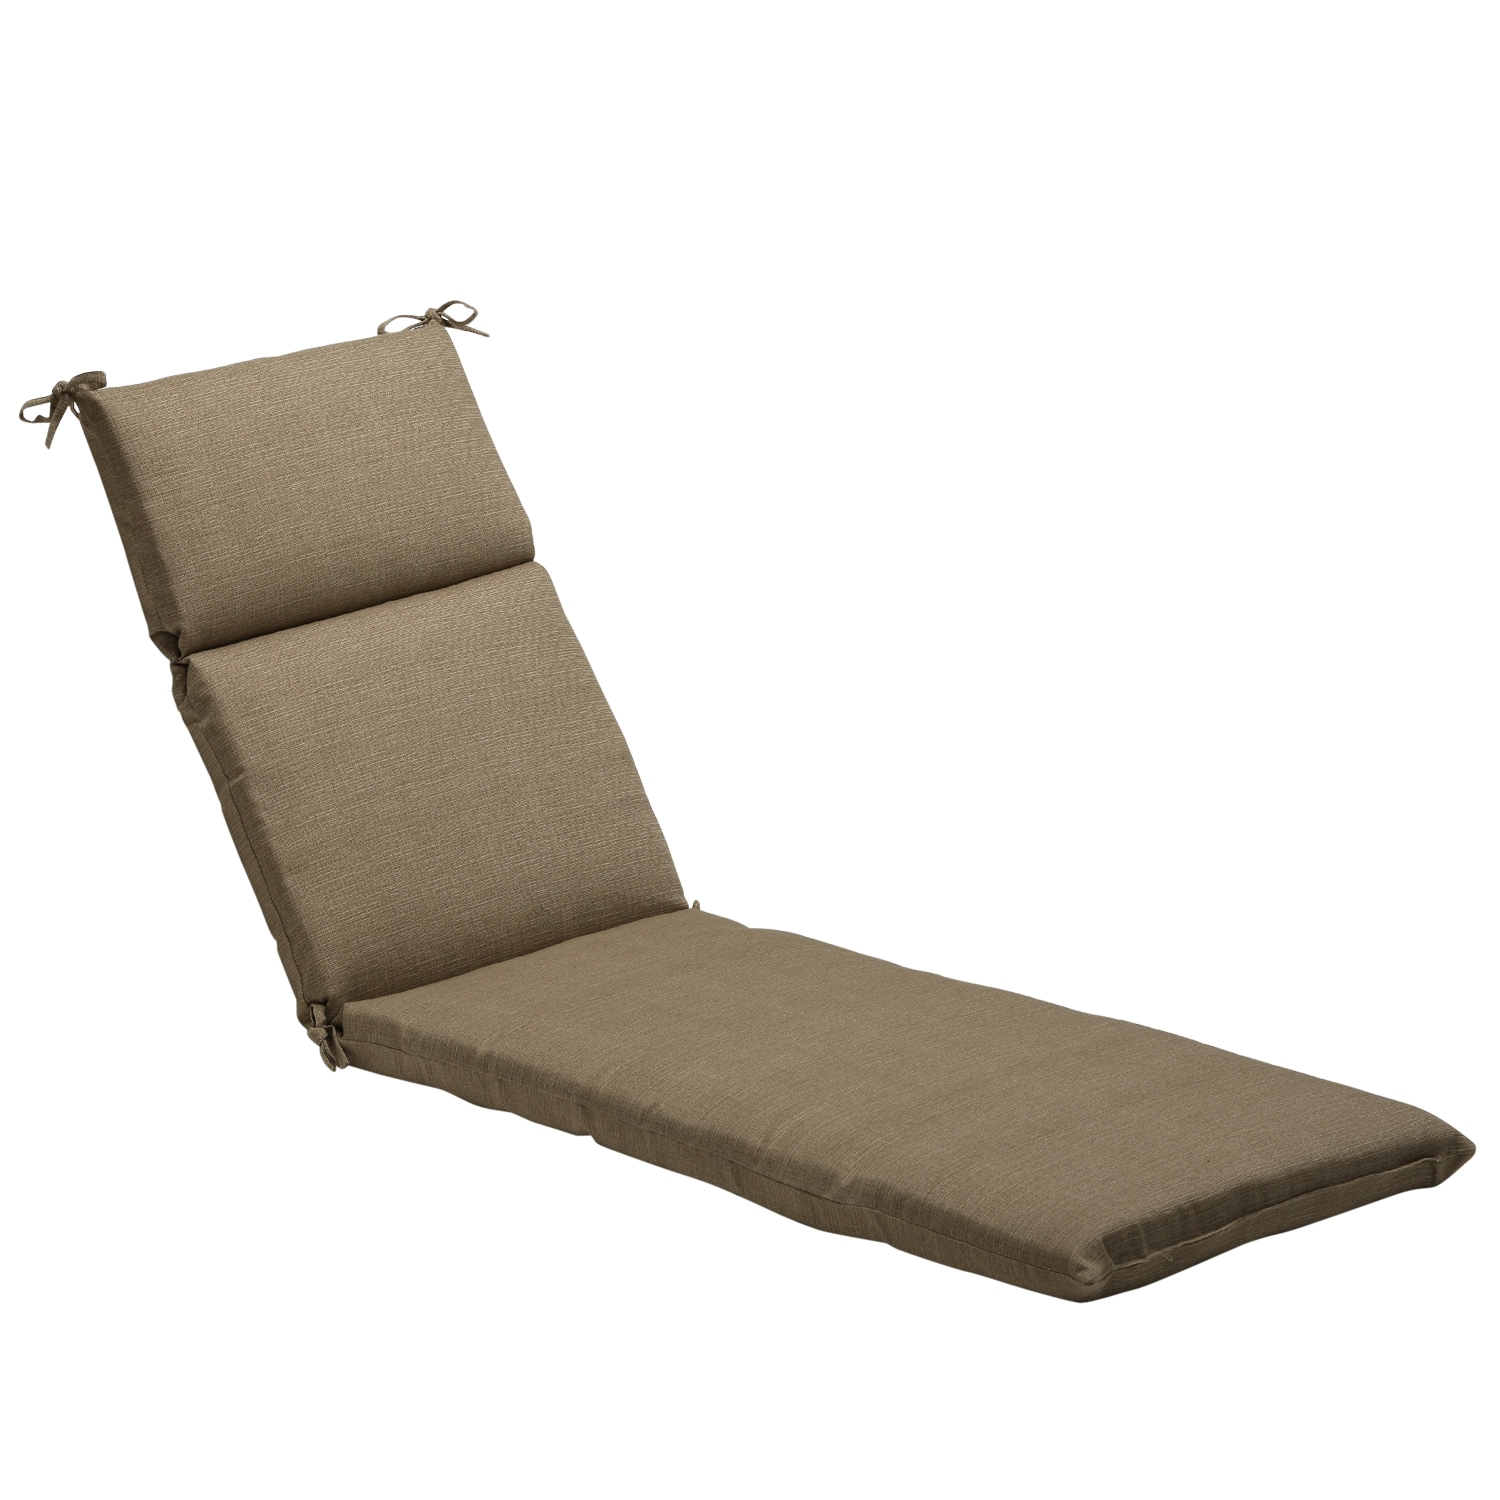 Solid taupe textured outdoor chaise lounge cushion for Chaise longue cushion